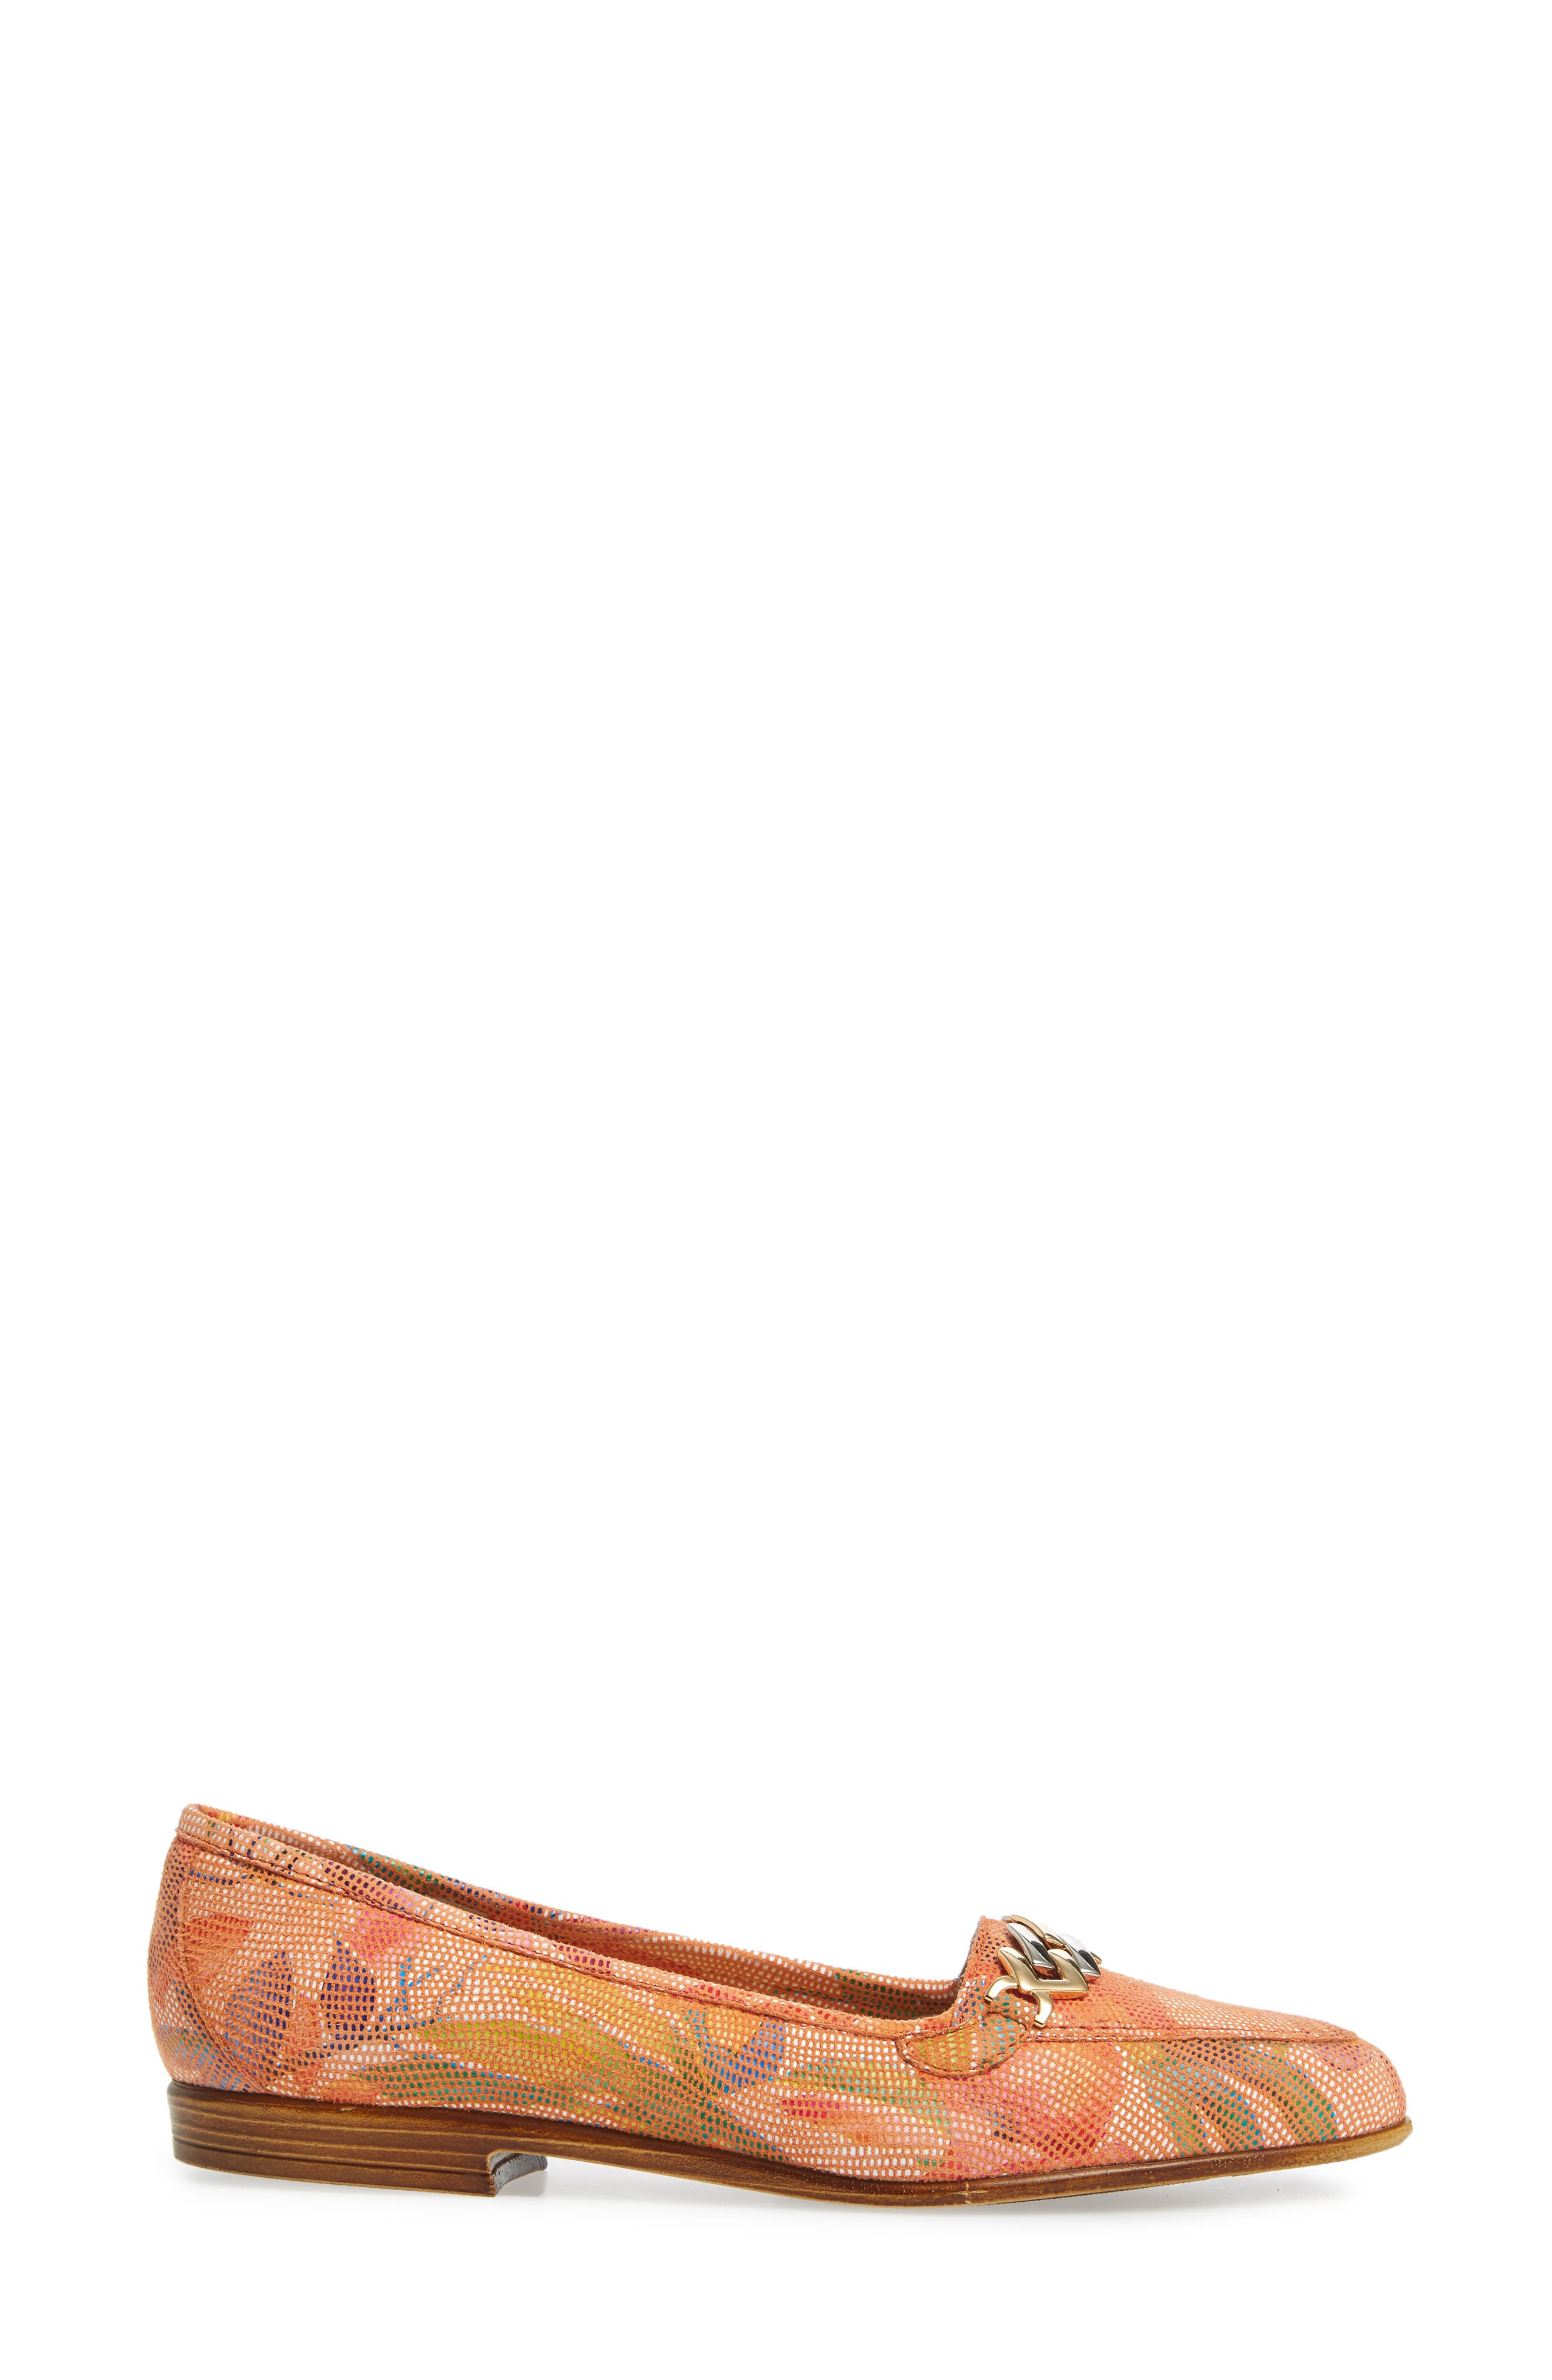 Oste Loafer,                             Alternate thumbnail 3, color,                             Salmon Leather